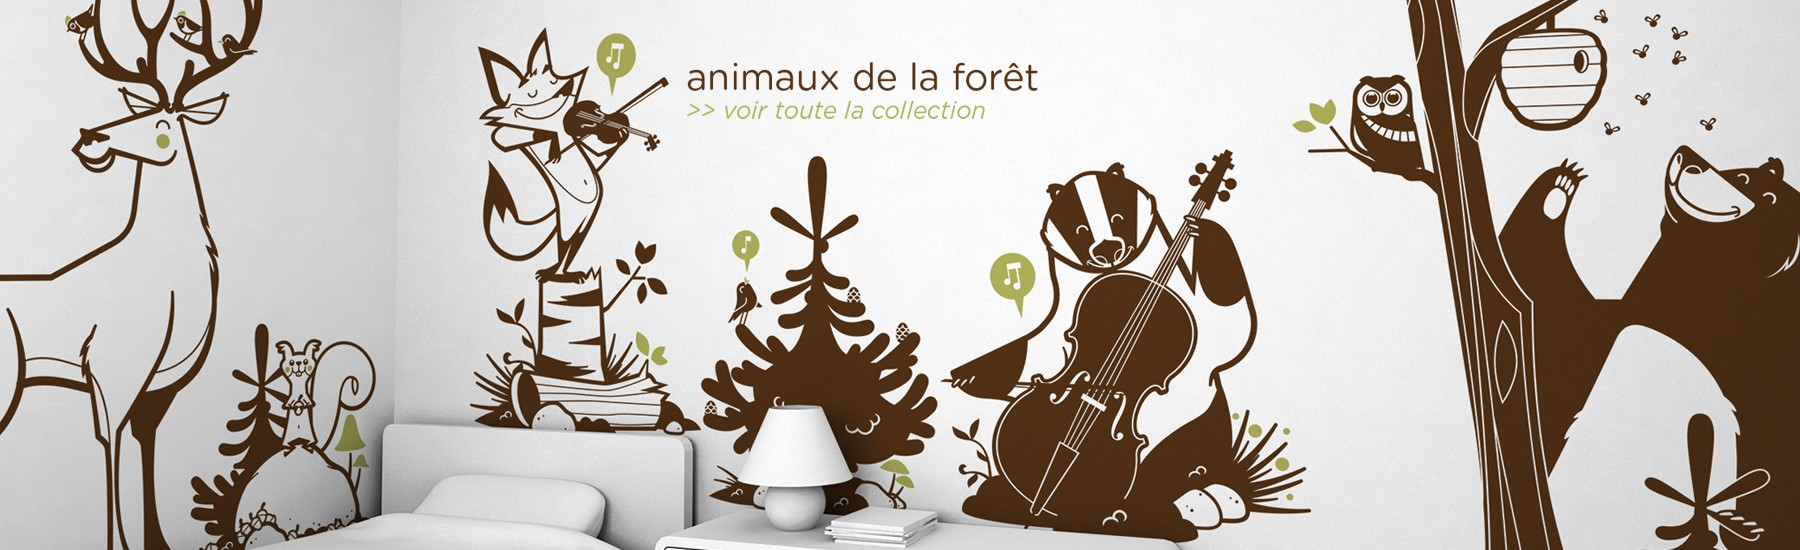 stickers-animaux-foret